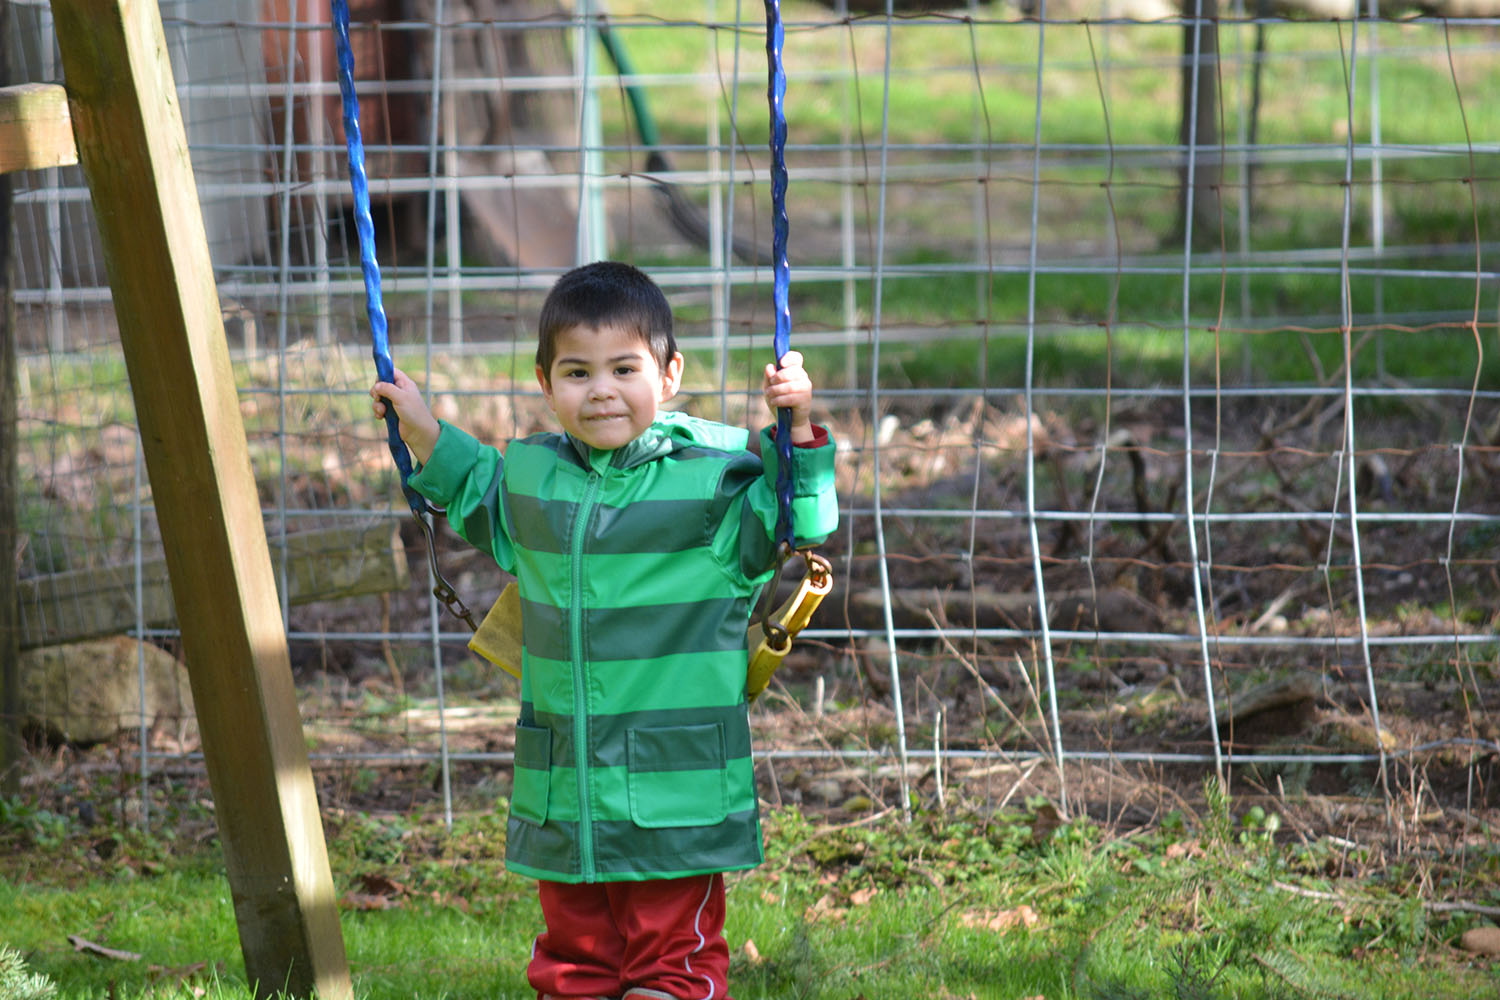 There is a little play set in the yard, which Levi made good use of once he was feeling better!